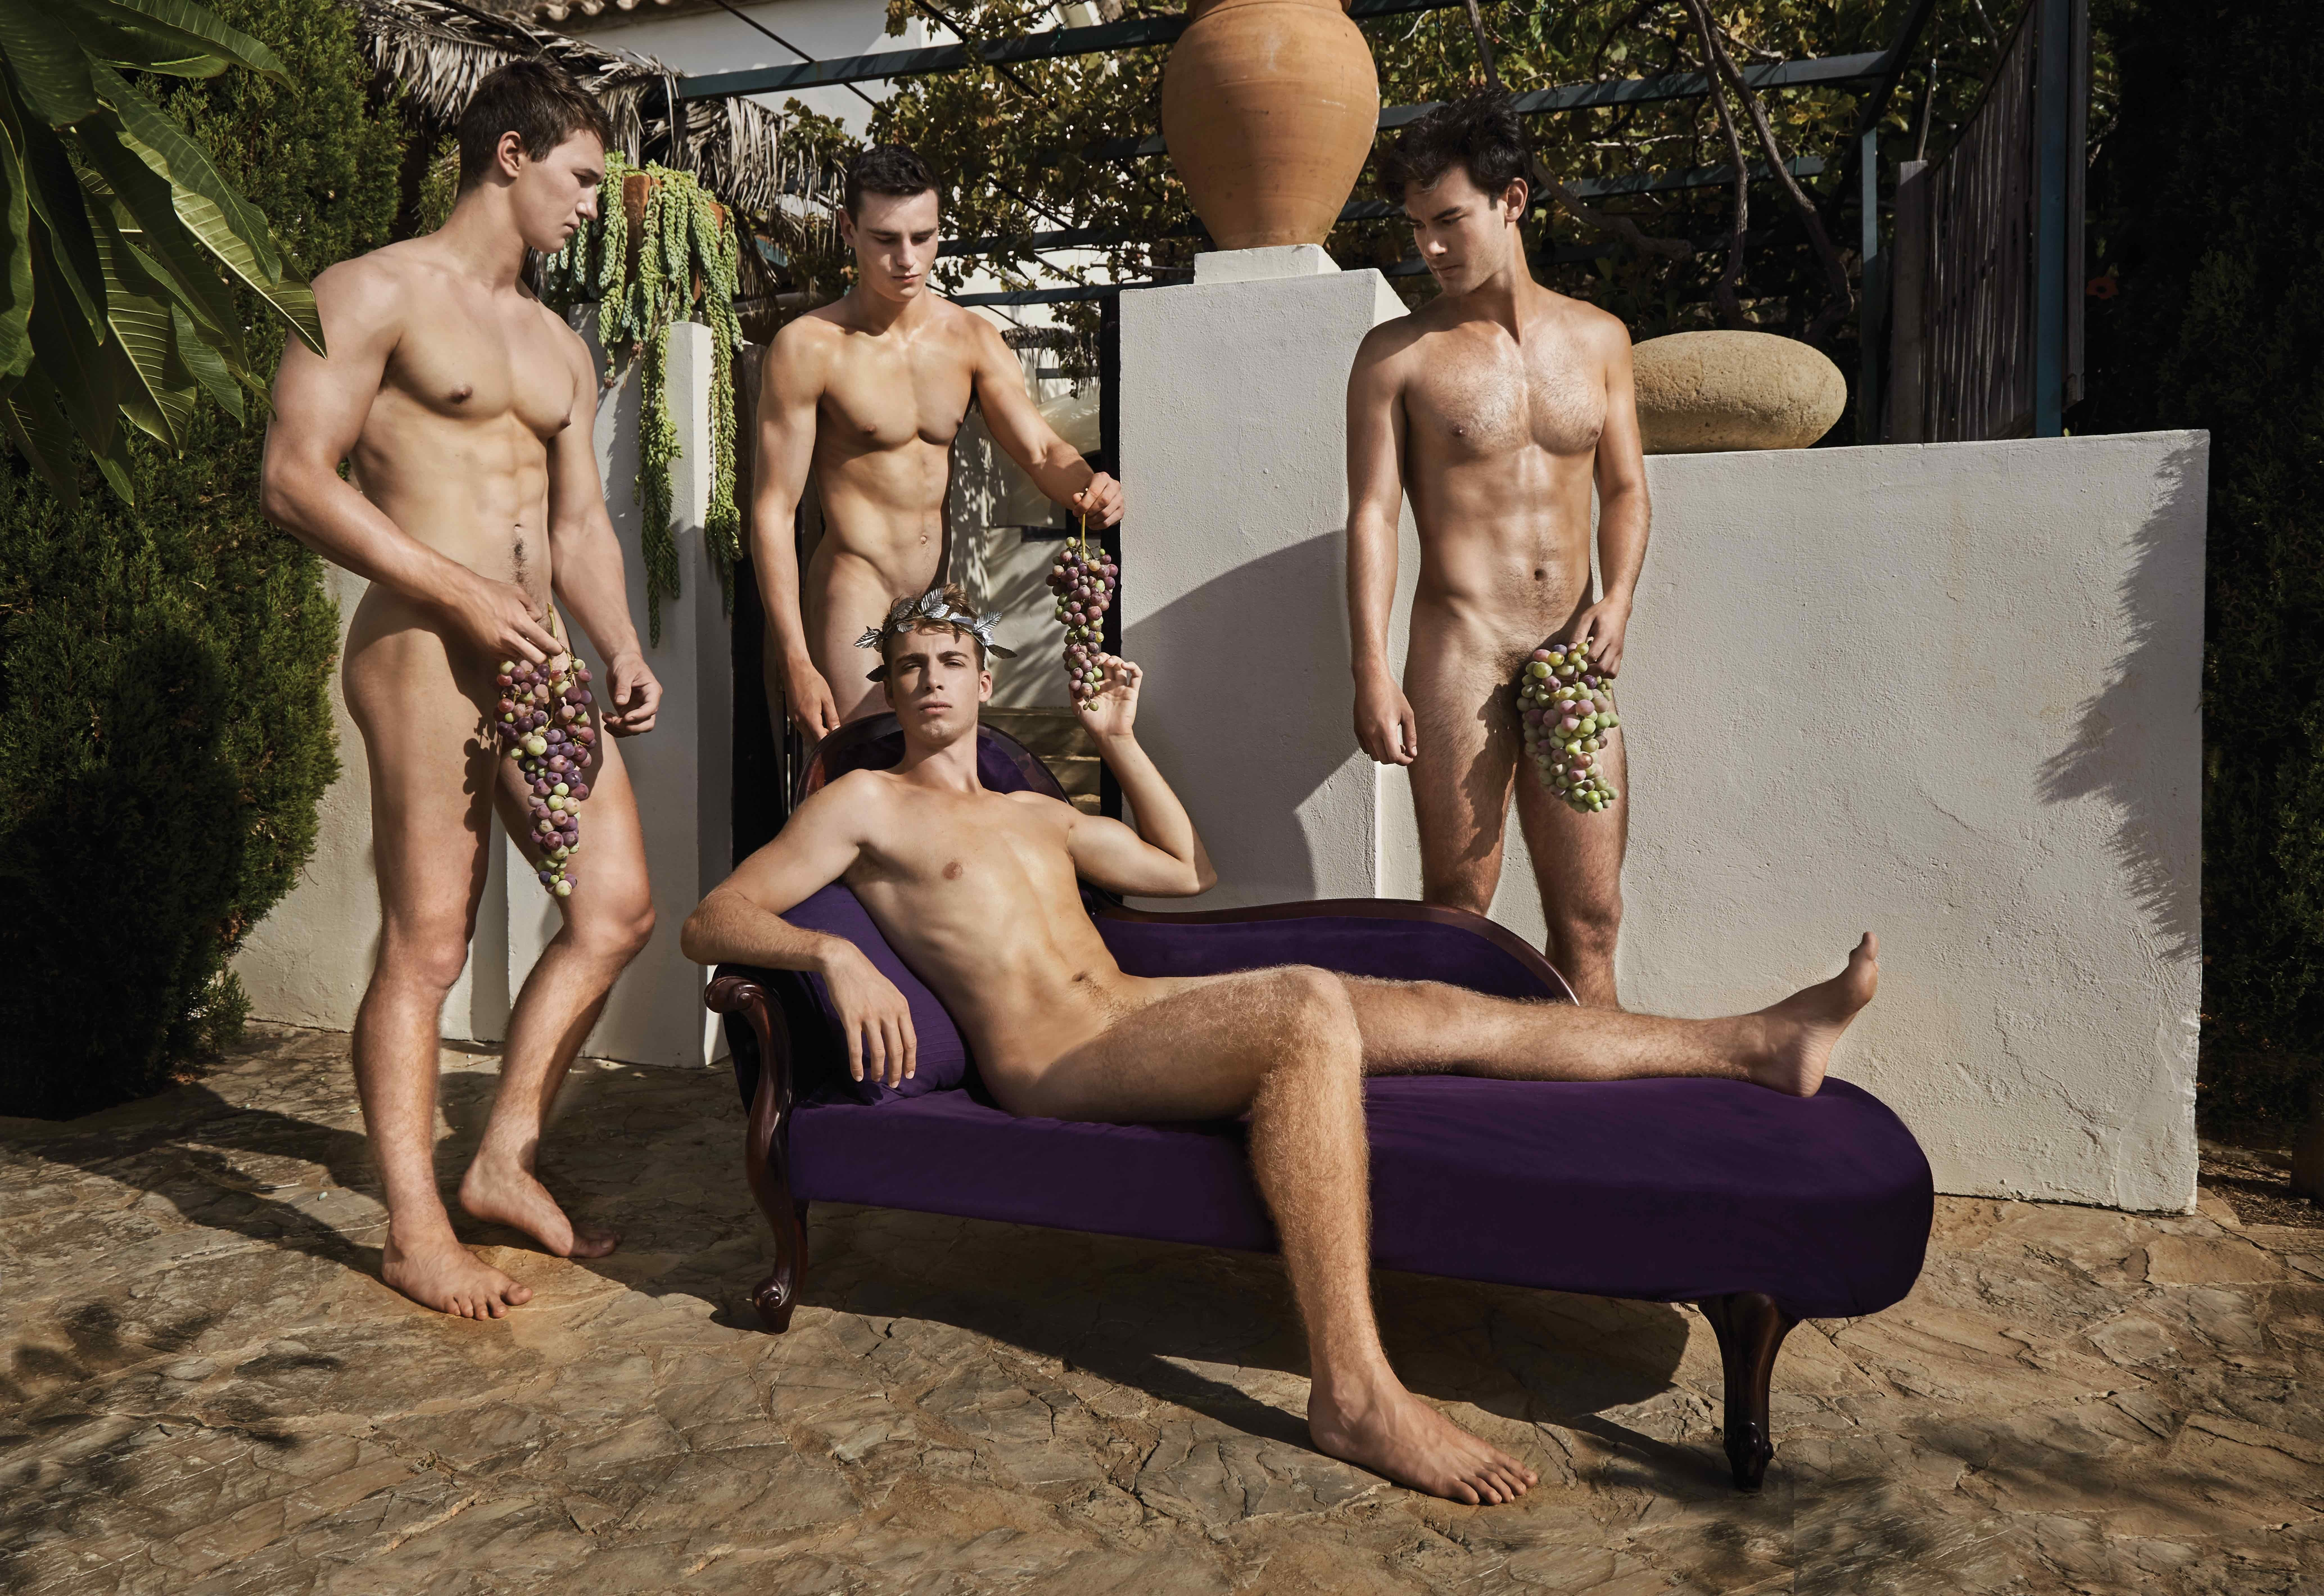 Proceeds from the sale of the 2018 Warwick Rowers calendar benefit Sport Allies, which is aimed at combating homoph